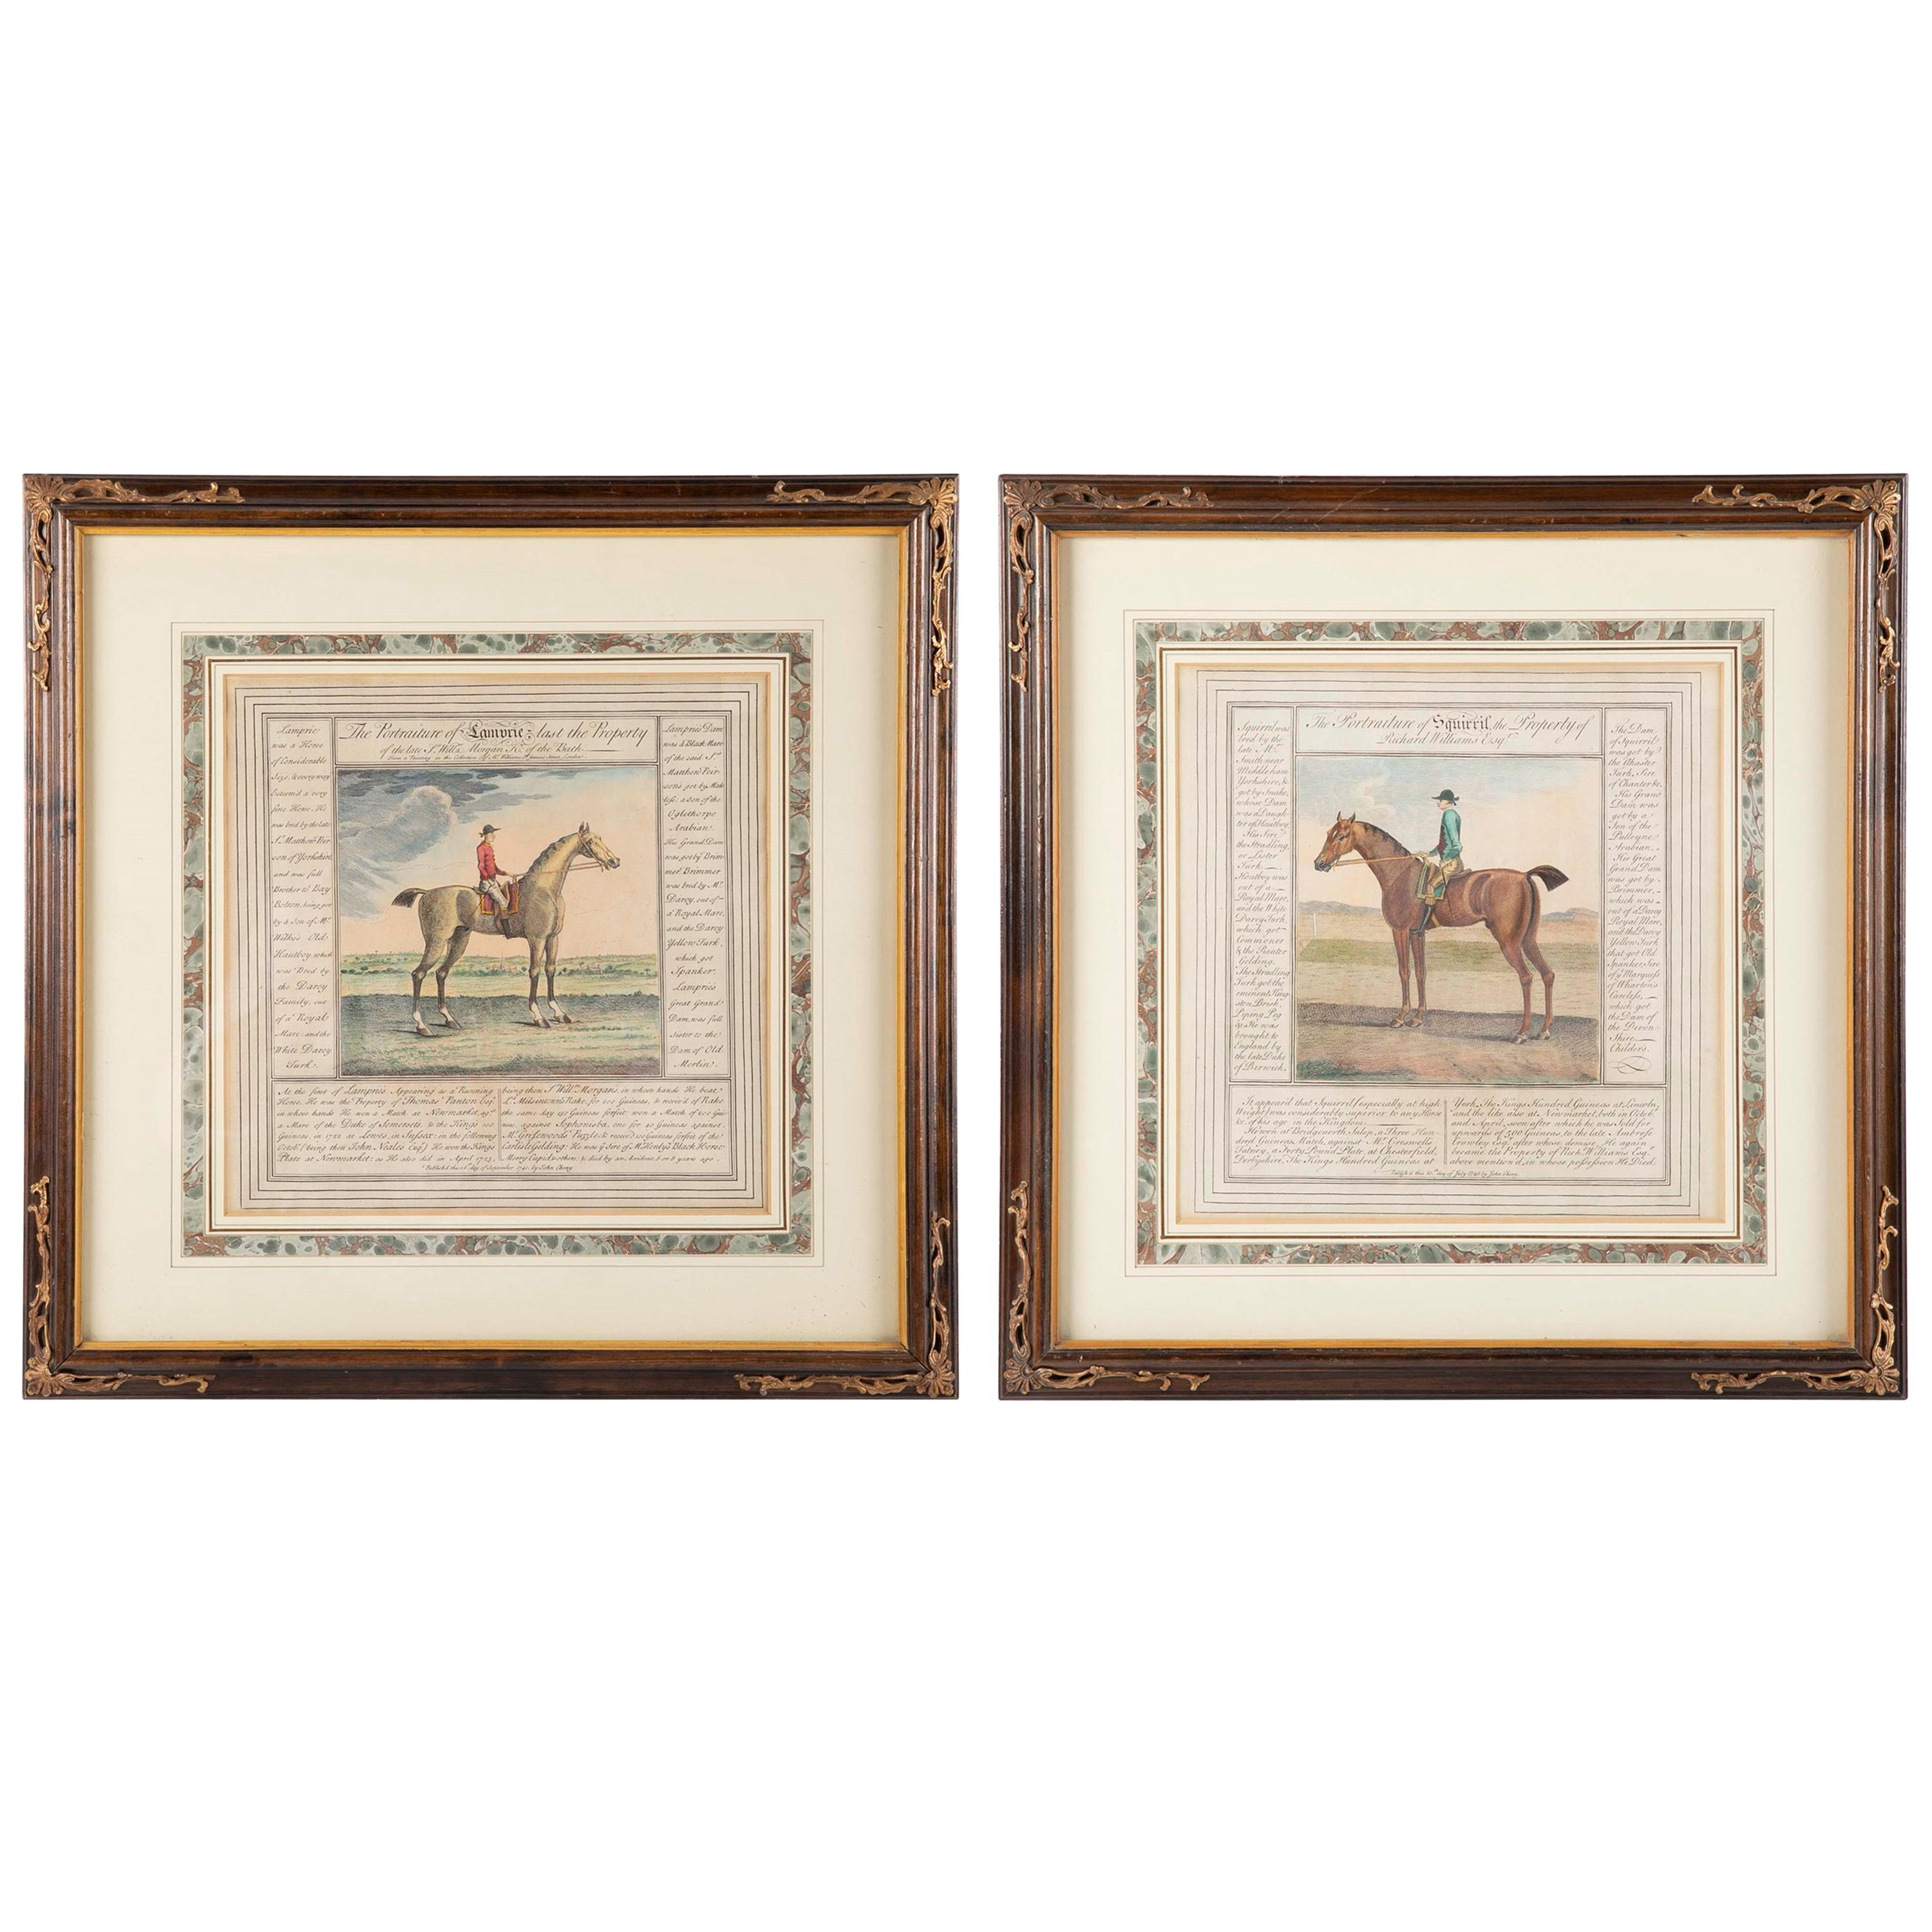 Pair of English 18th Century Hand Colored Equestrian Prints